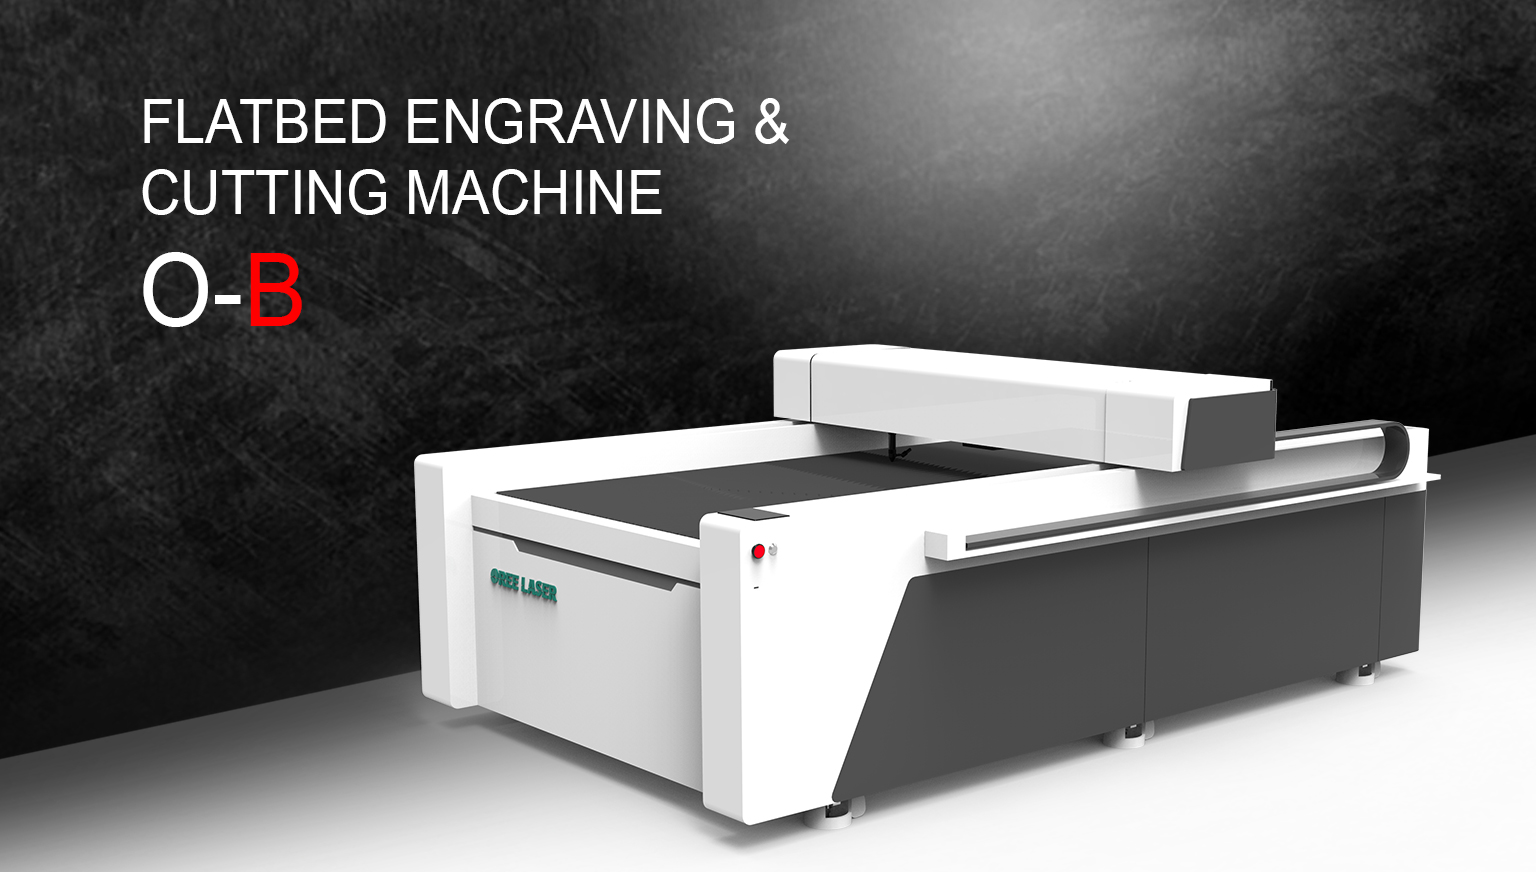 Flatbed Engraving & Cutting Machine